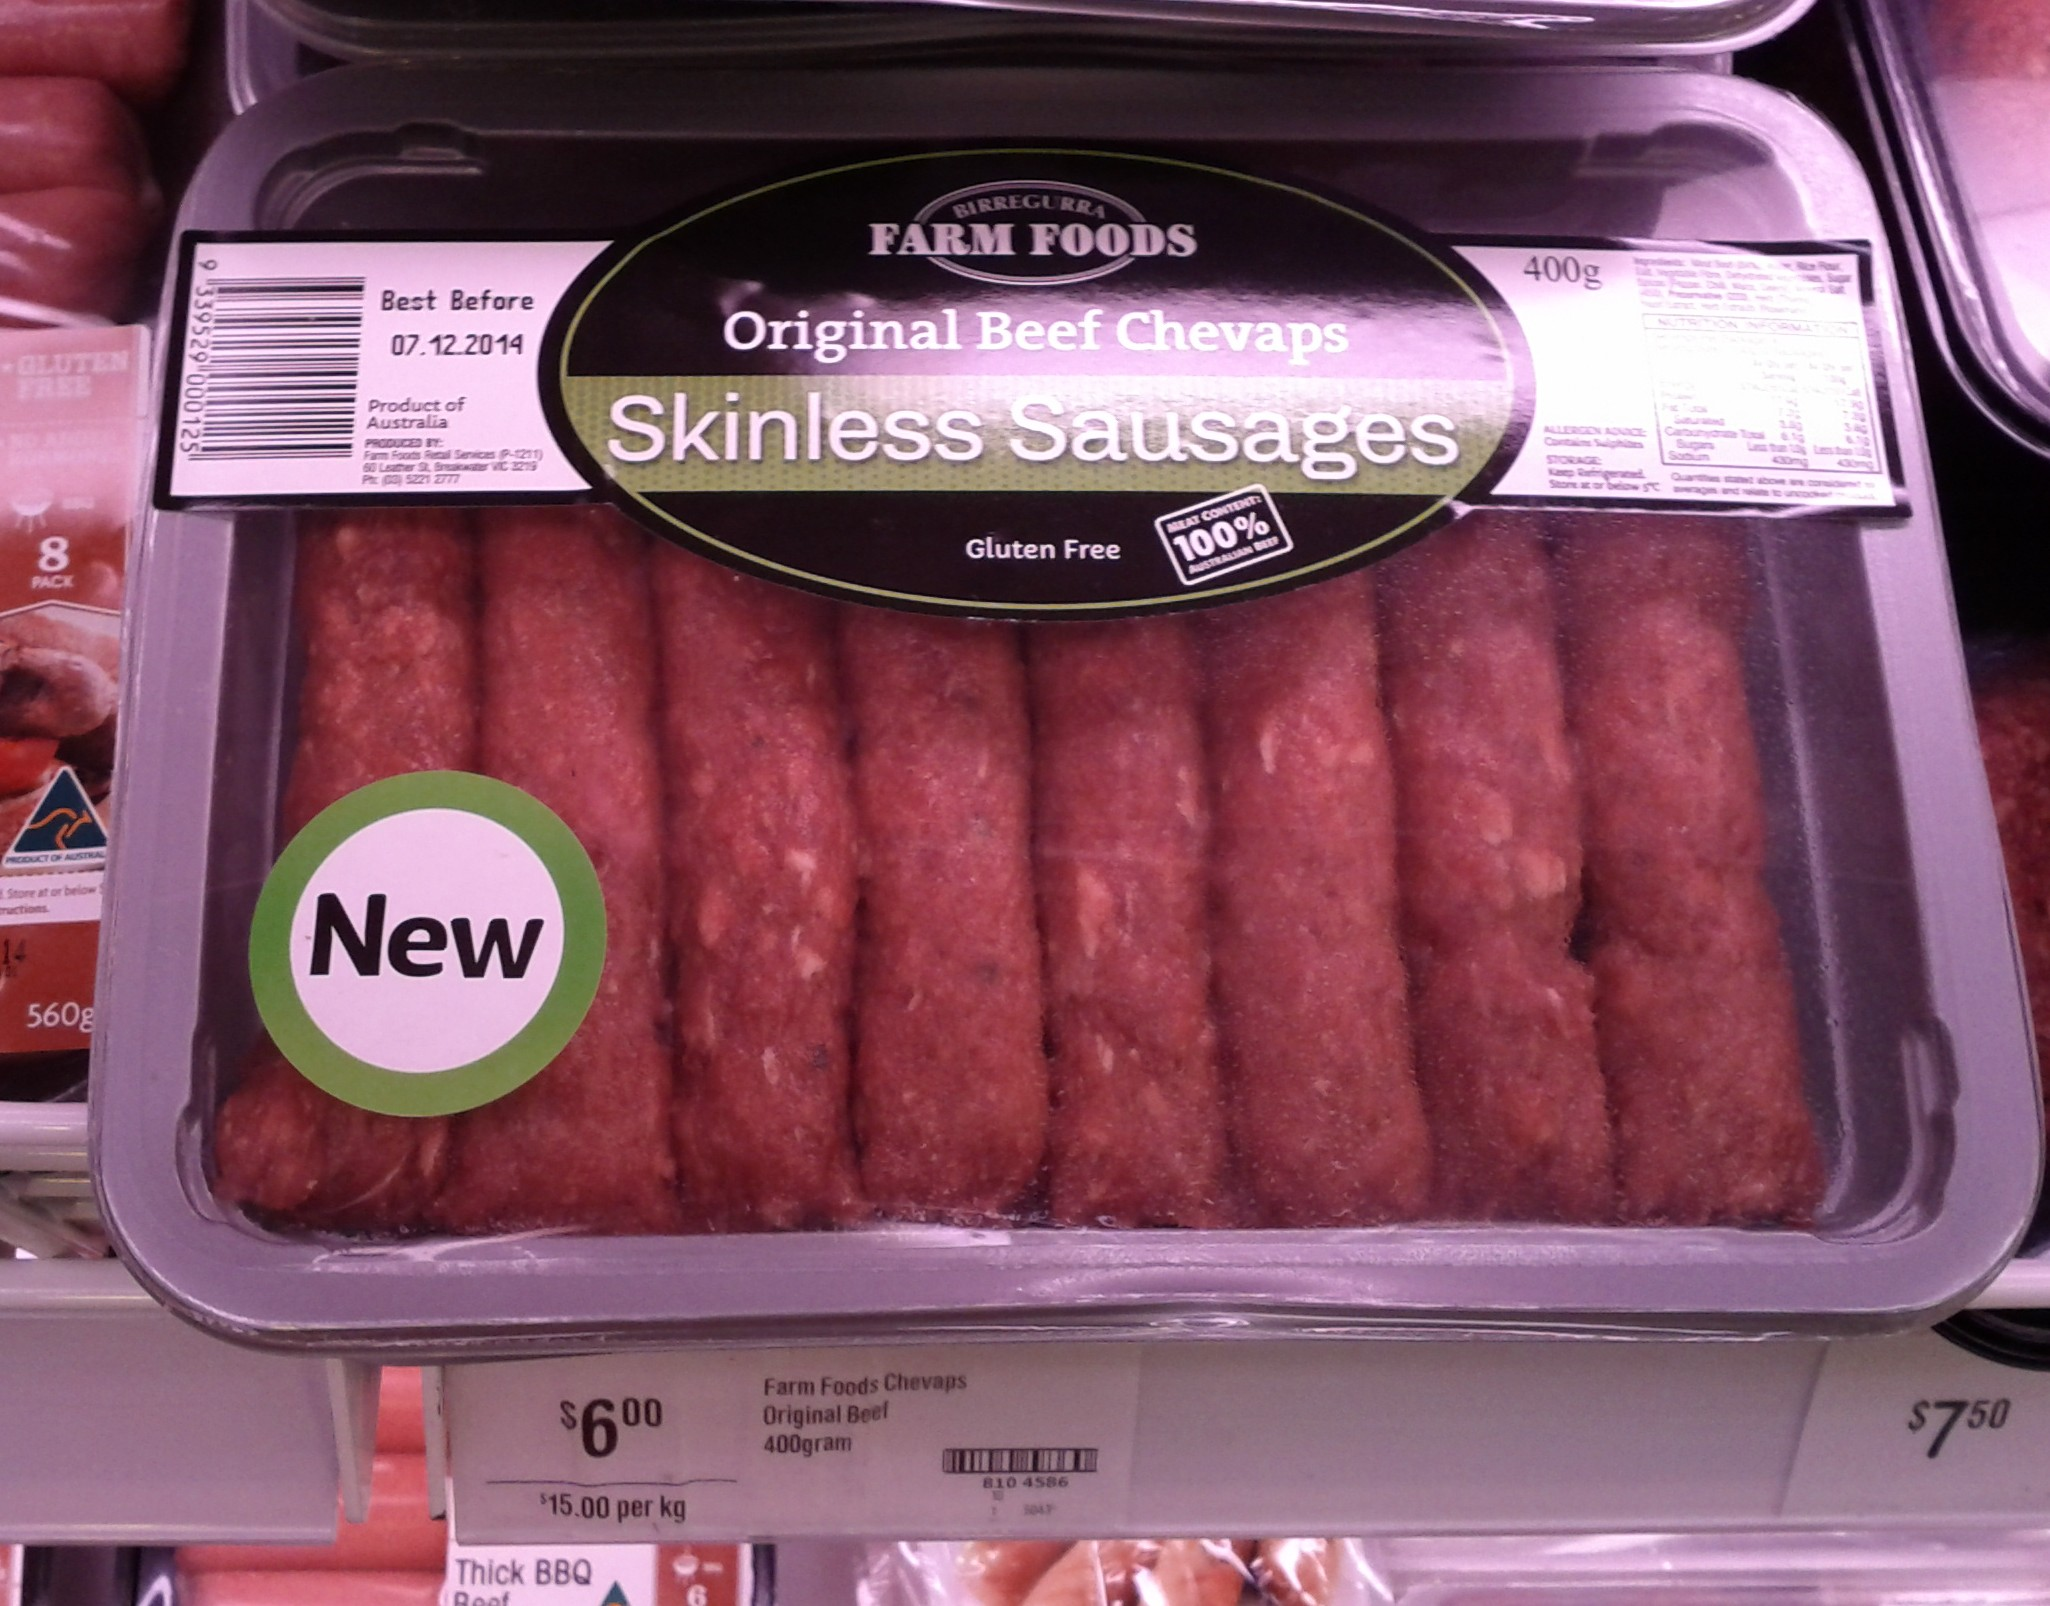 Farm Foods 400g Skinless Sausages